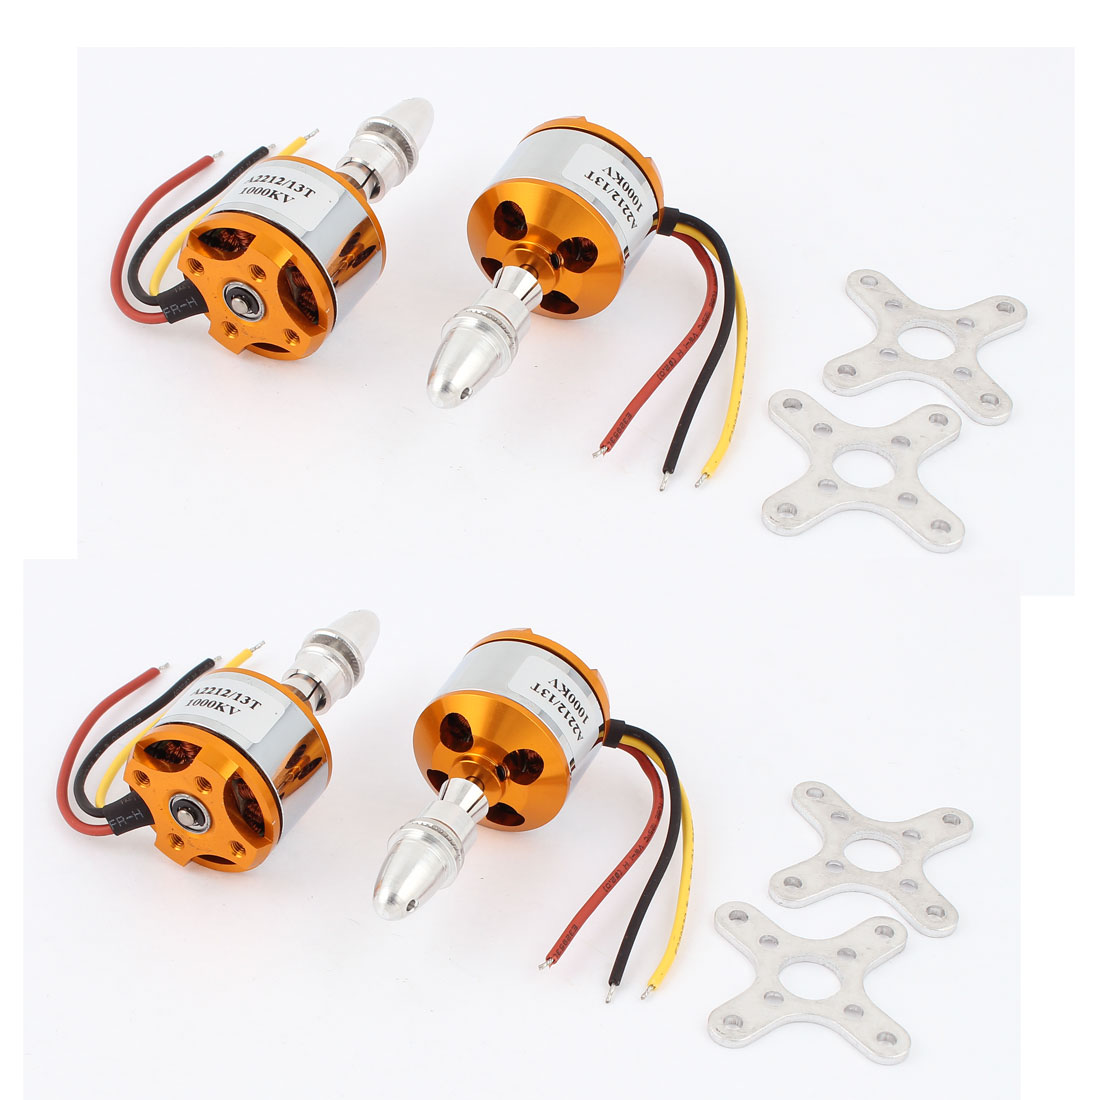 4pcs A2212 1000KV Brushless Outrunner Motor for RC Plane Helicopter Quadcopter